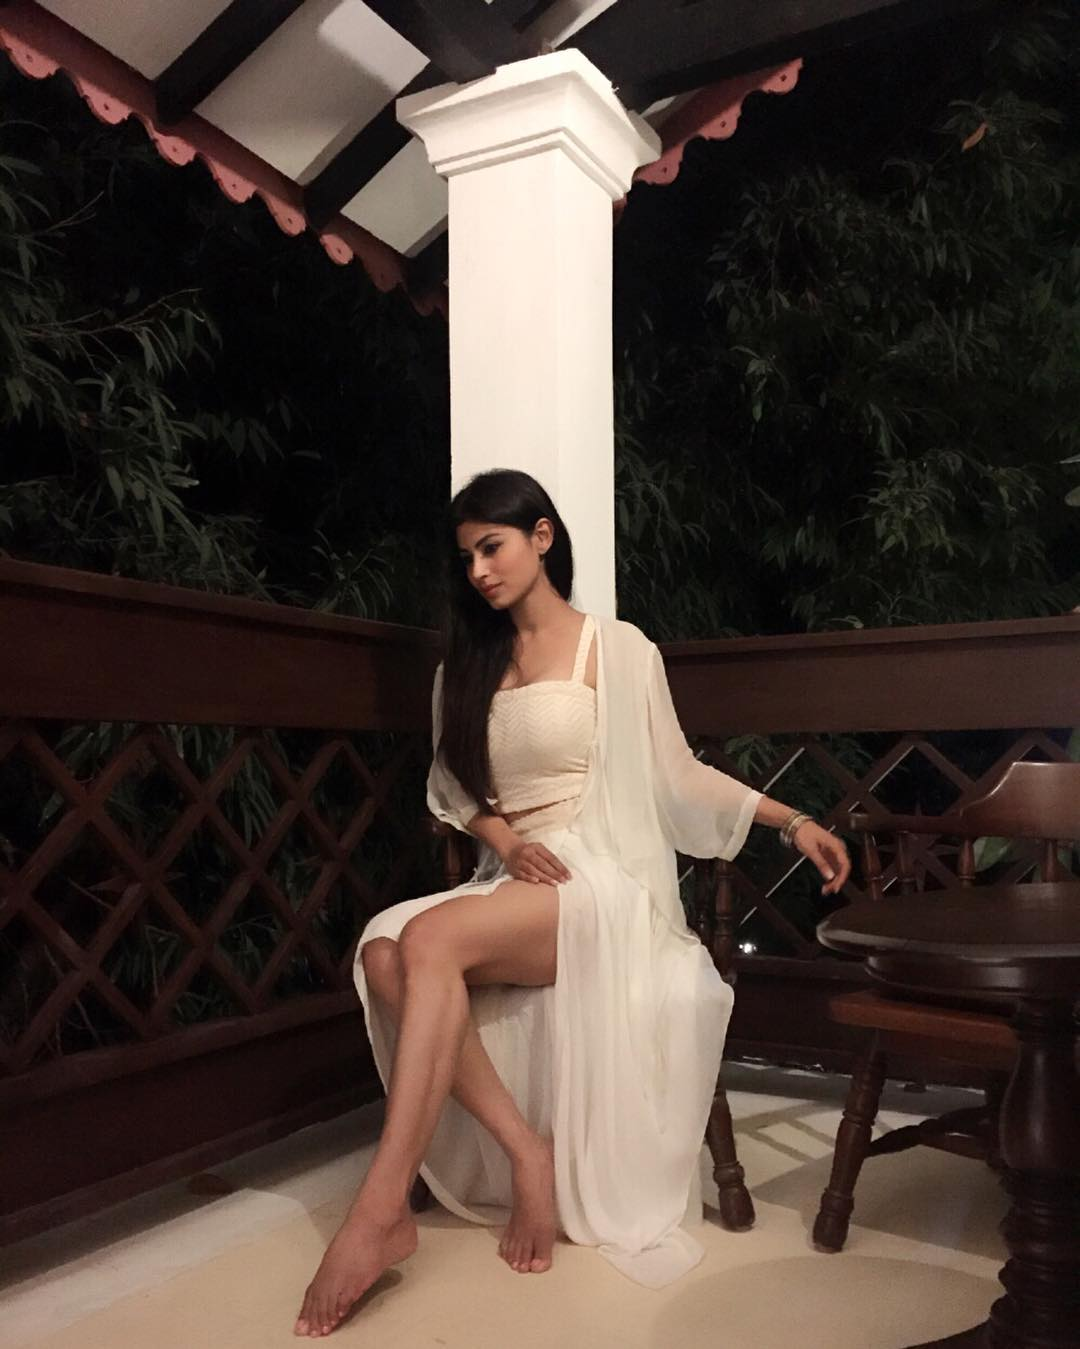 Mouni-Roy-Hot-looks Mouni Roy 15+ Scorching Photograph's in Bikini Swimsuit Pictures Horny Wallpapers